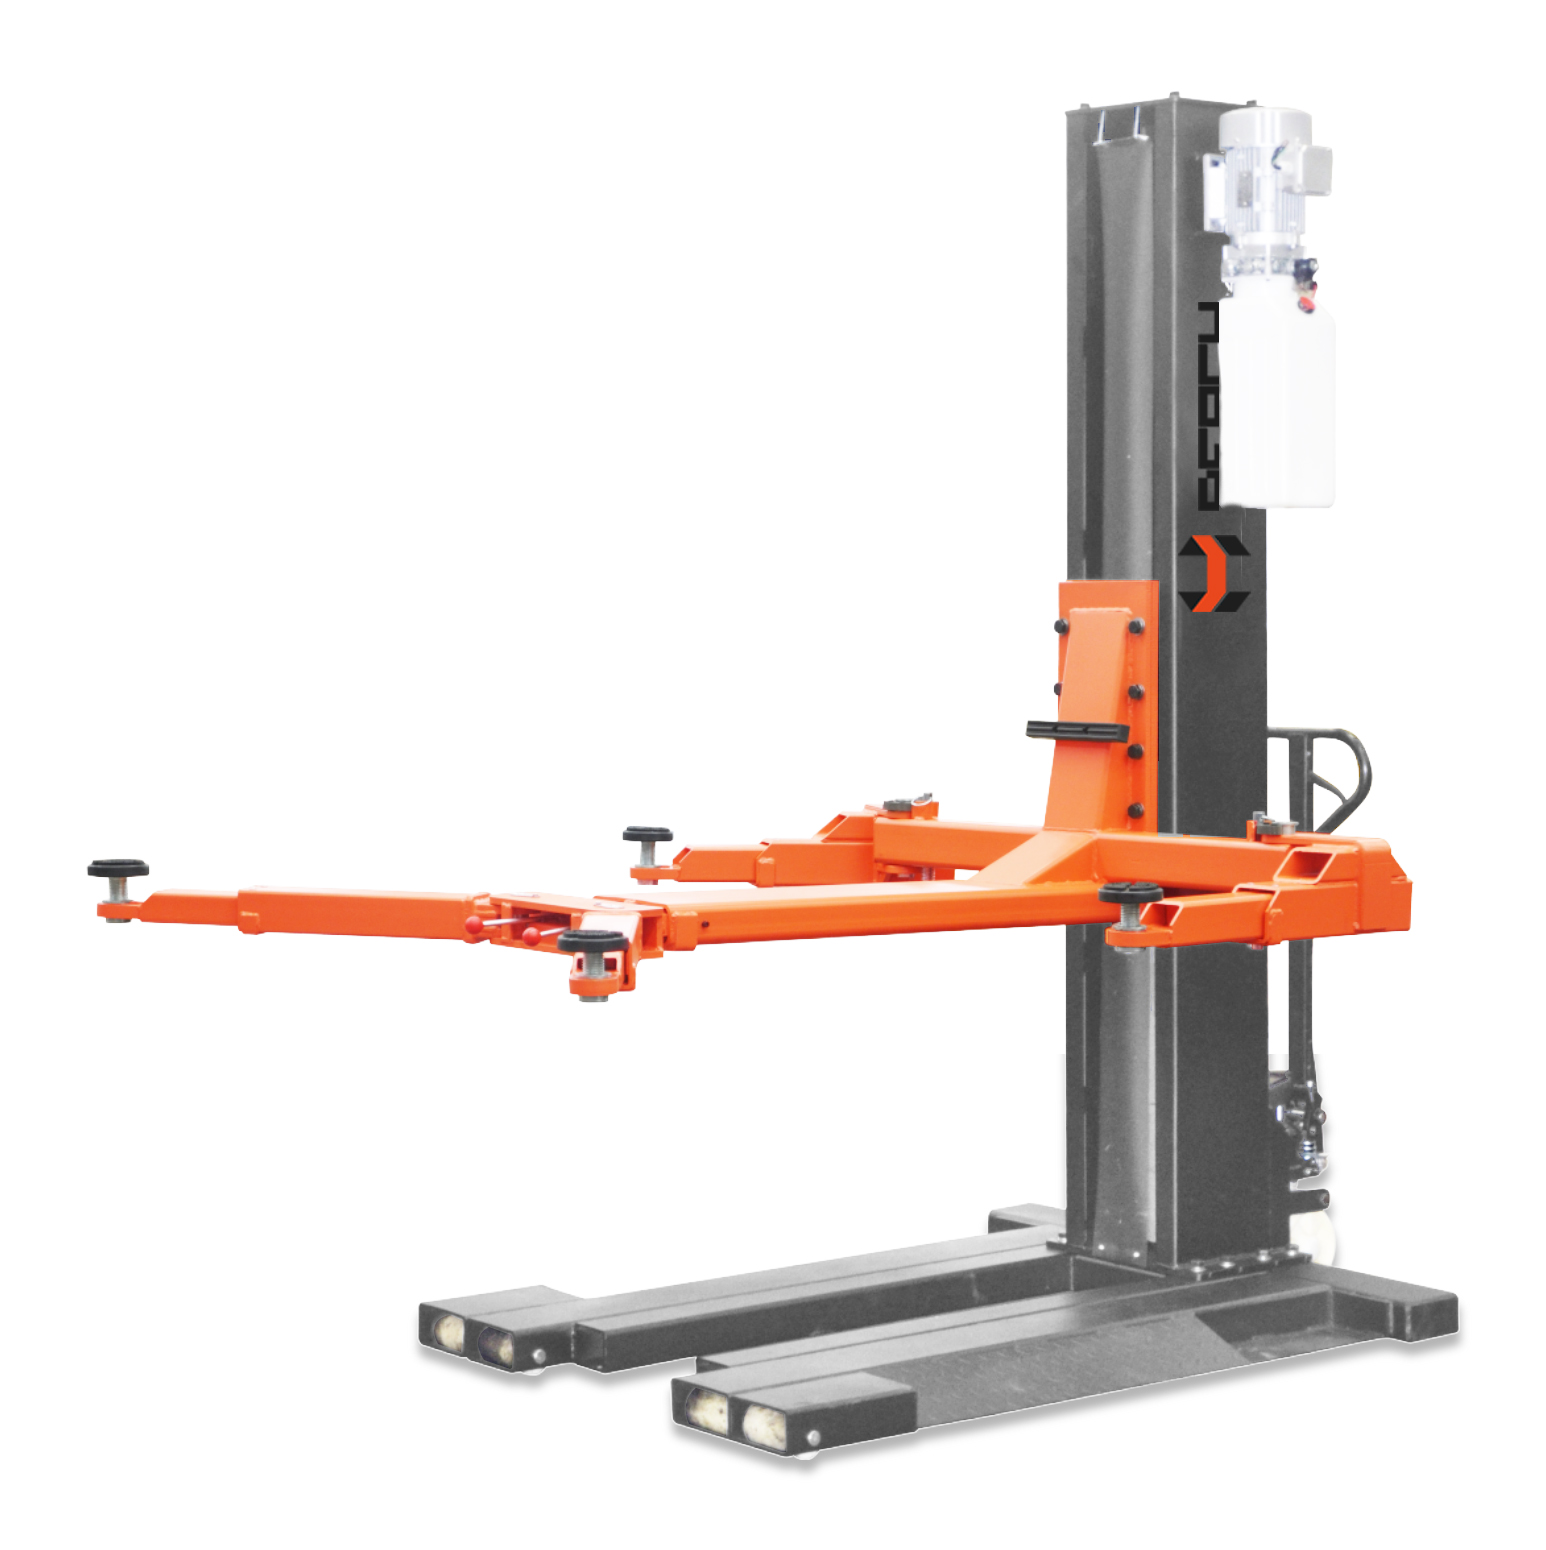 REACH Single post car lift auto hydraulic lift 1 post car lift Featured Image